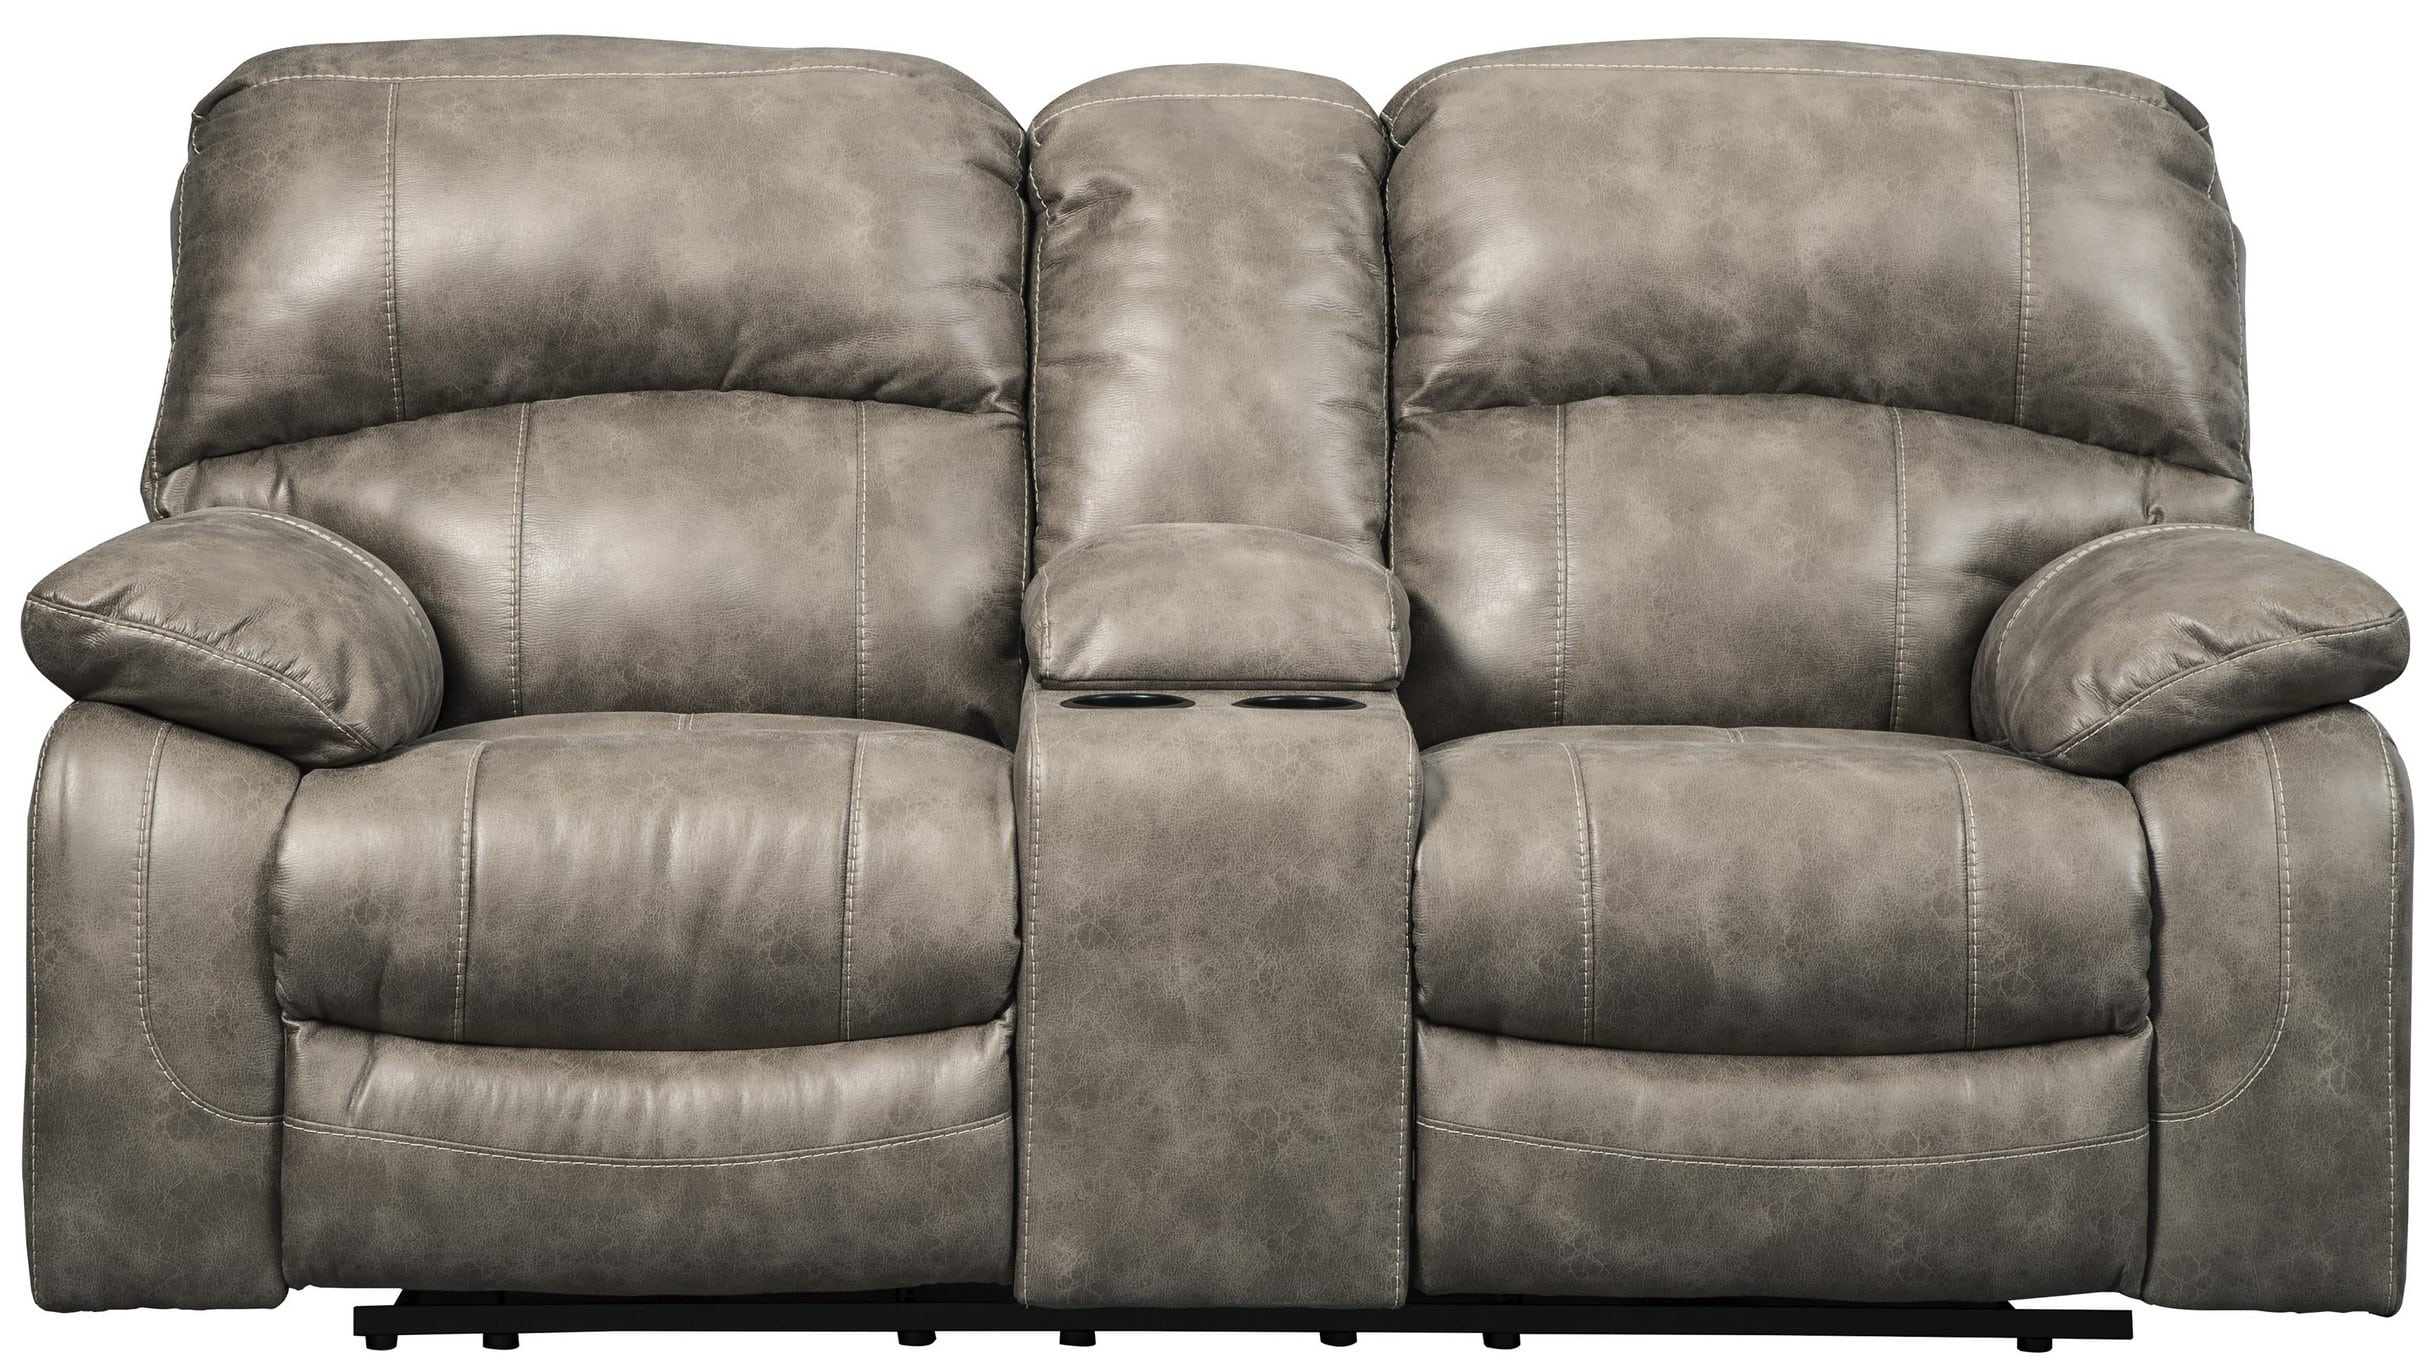 dunwell driftwood power recliner loveseat with console adjustable headrest